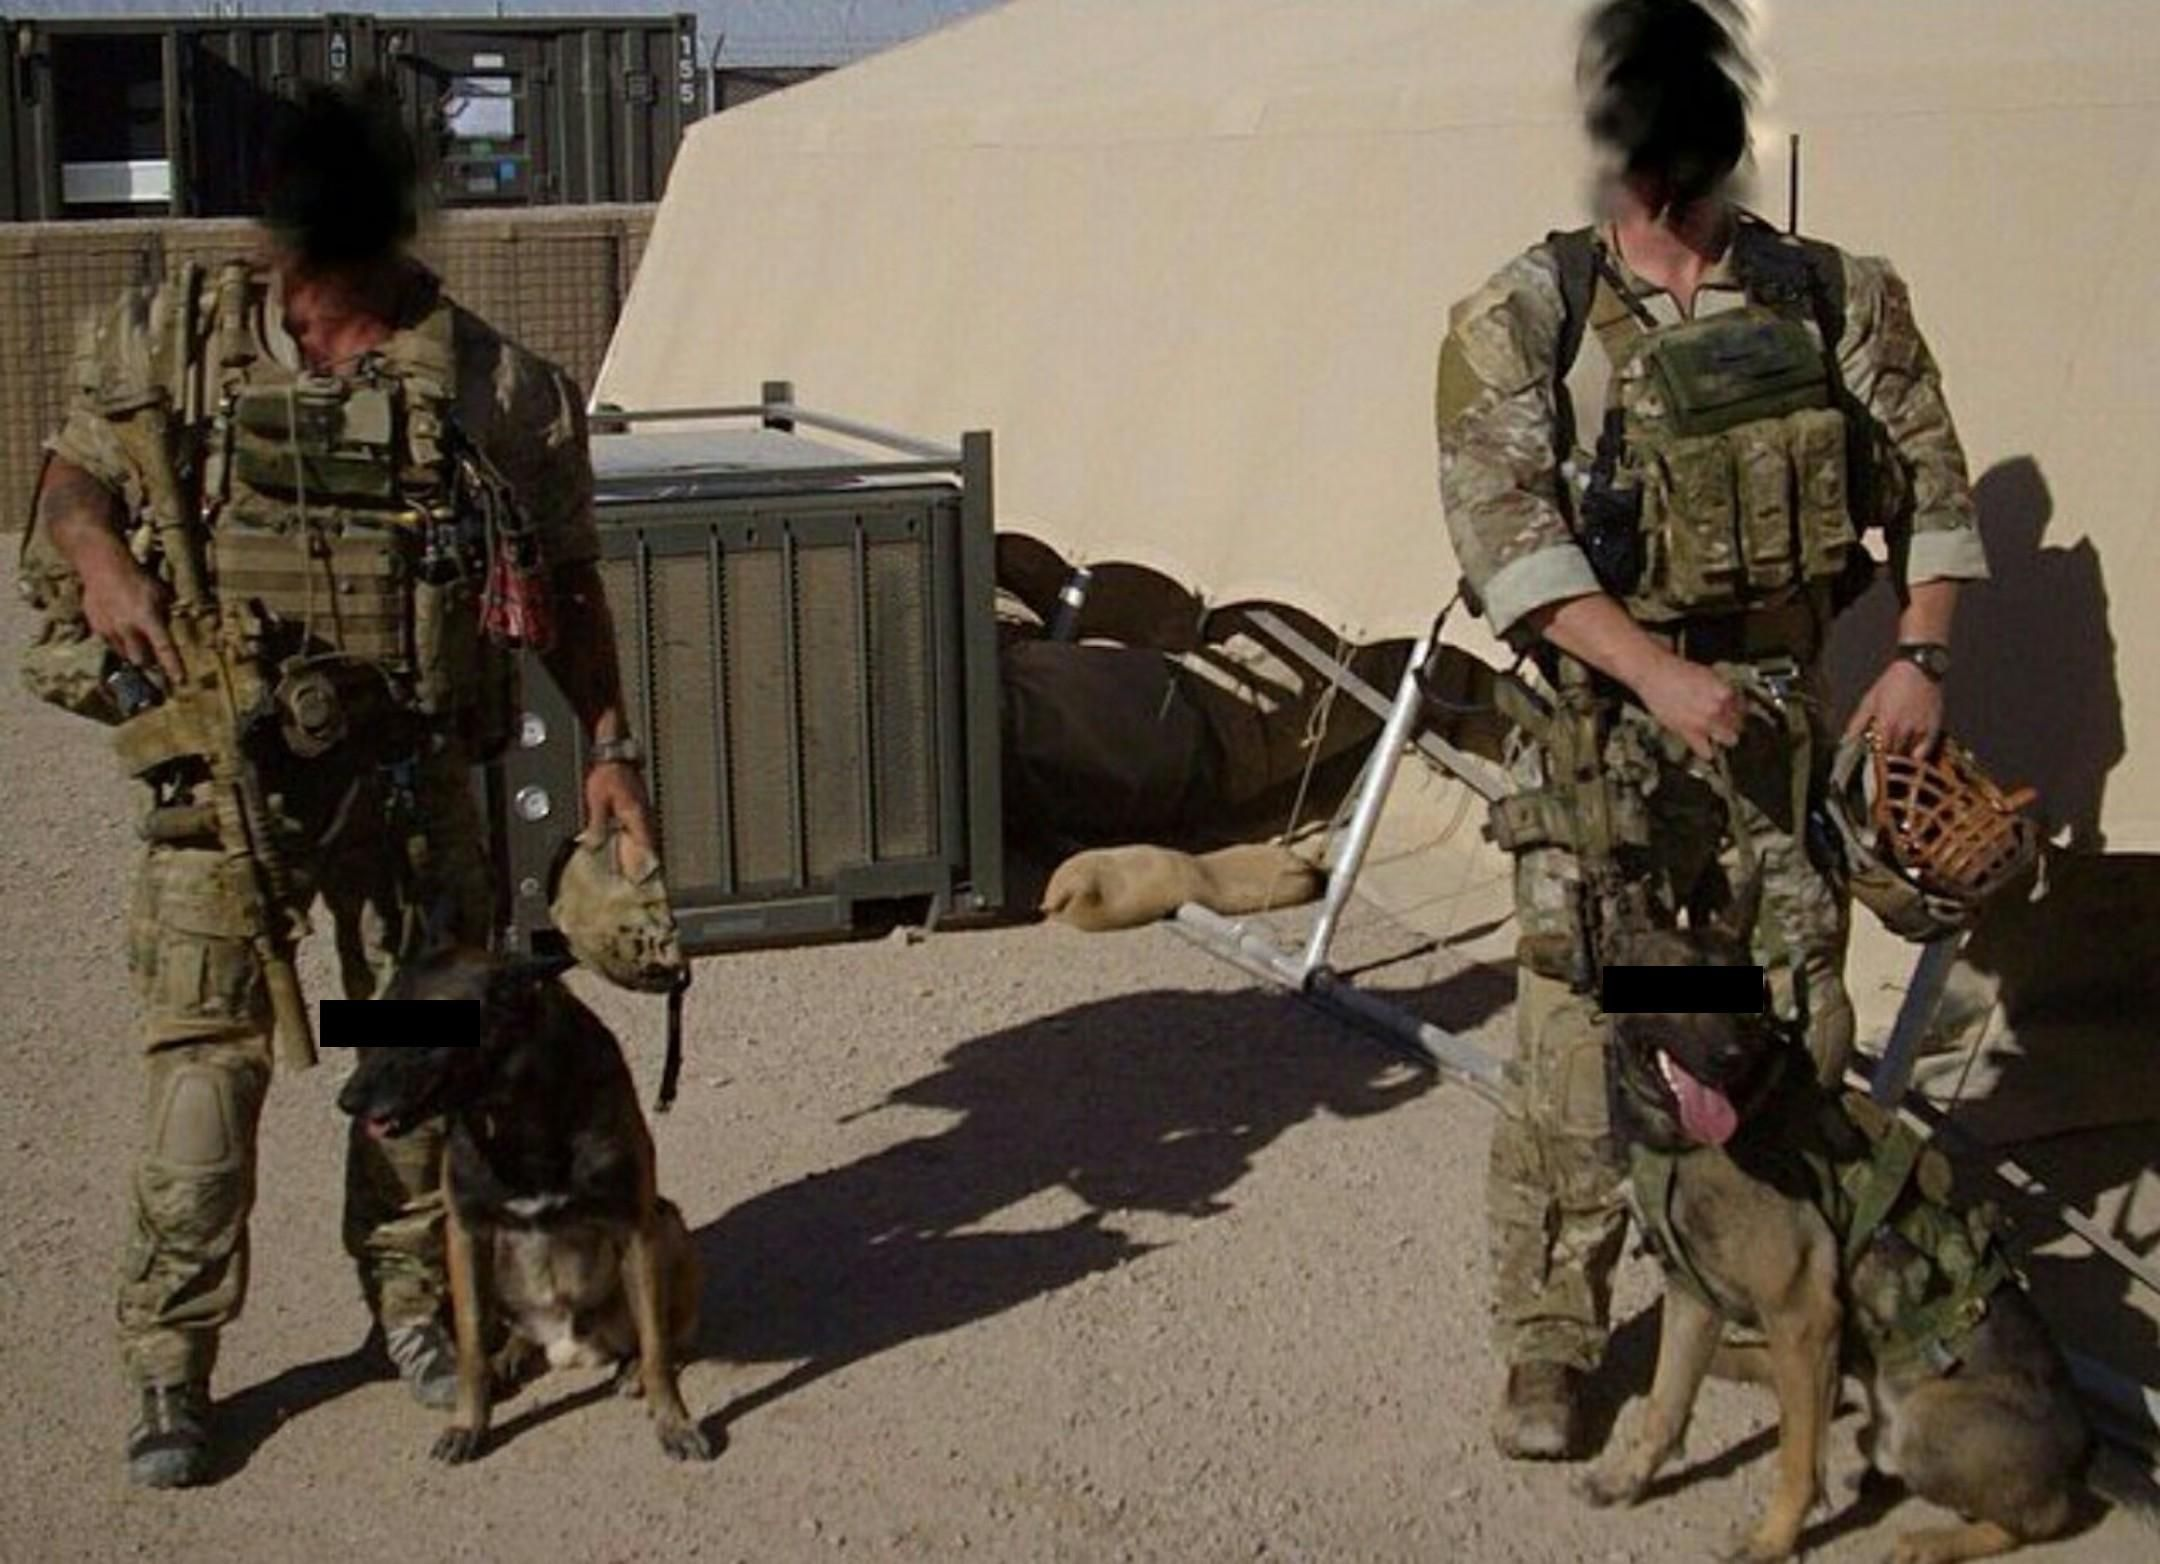 Two working Dogs with the British SAS. [21601564